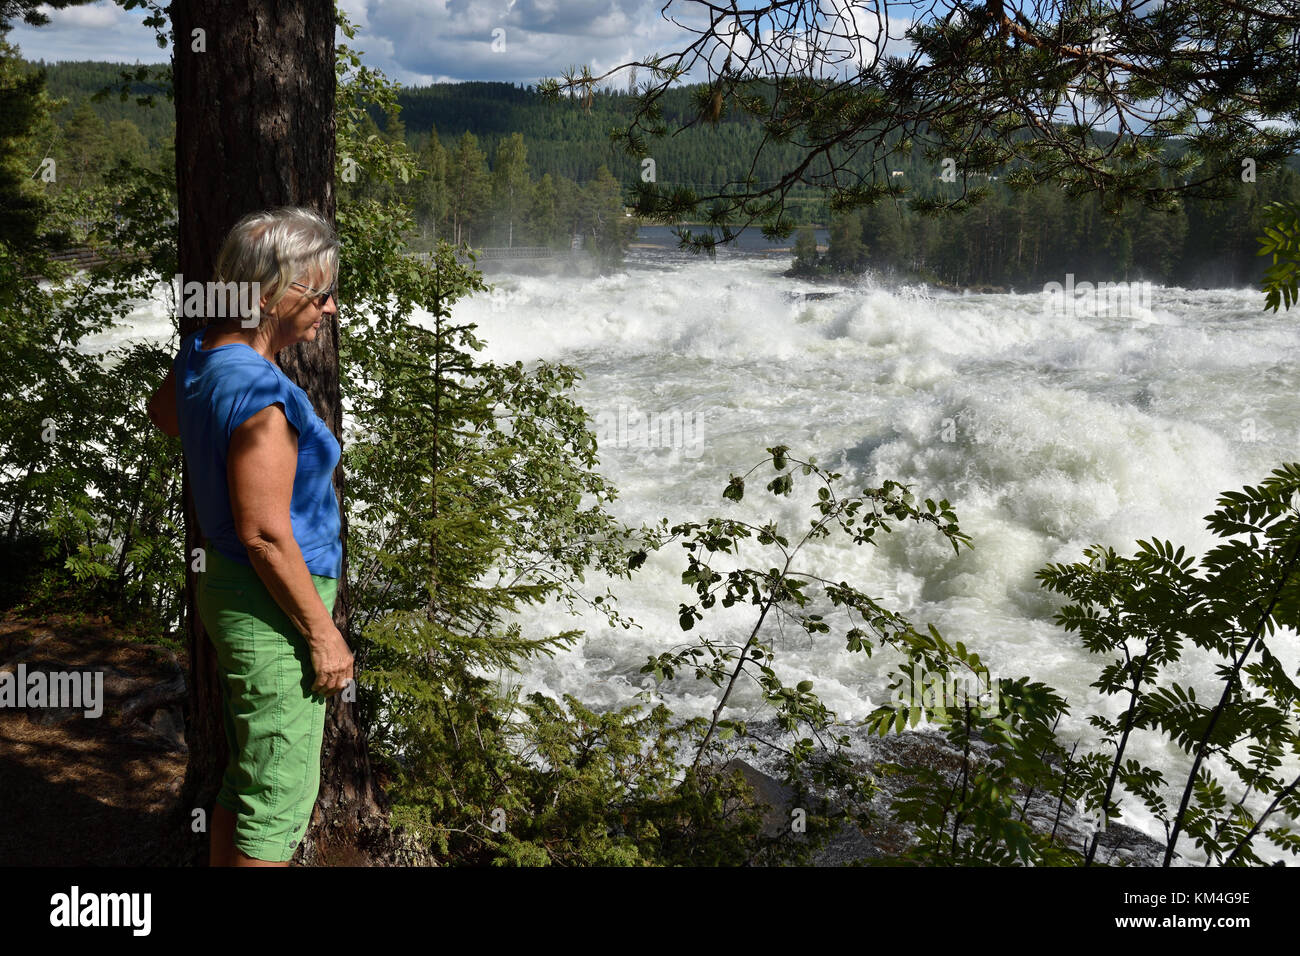 Women standing next to a tree looking down to white water, picture from Bredsel in the North of Sweden. - Stock Image